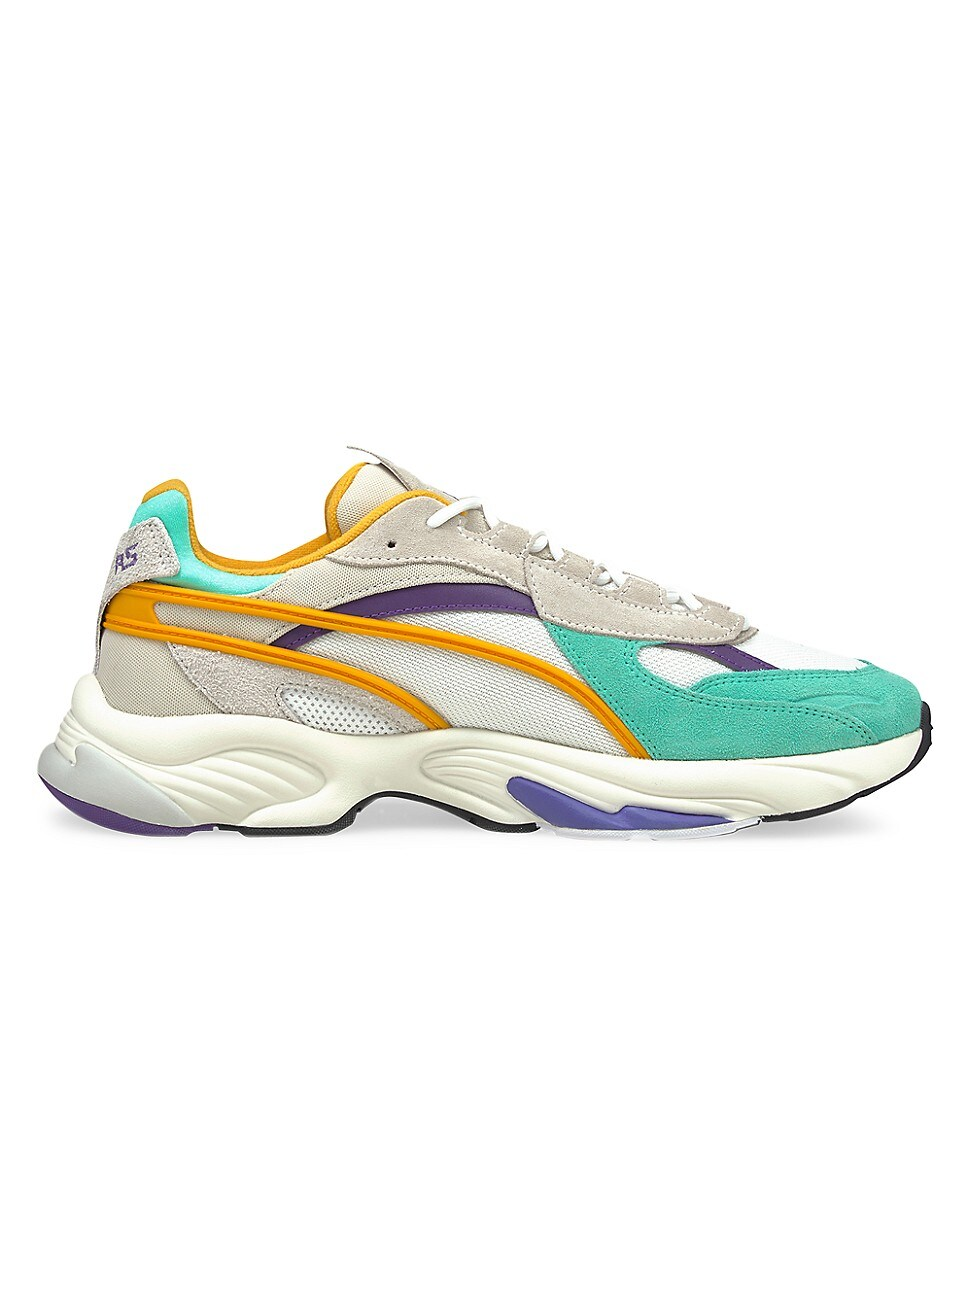 Puma MEN'S MEN'S RS CONNECT SNEAKERS